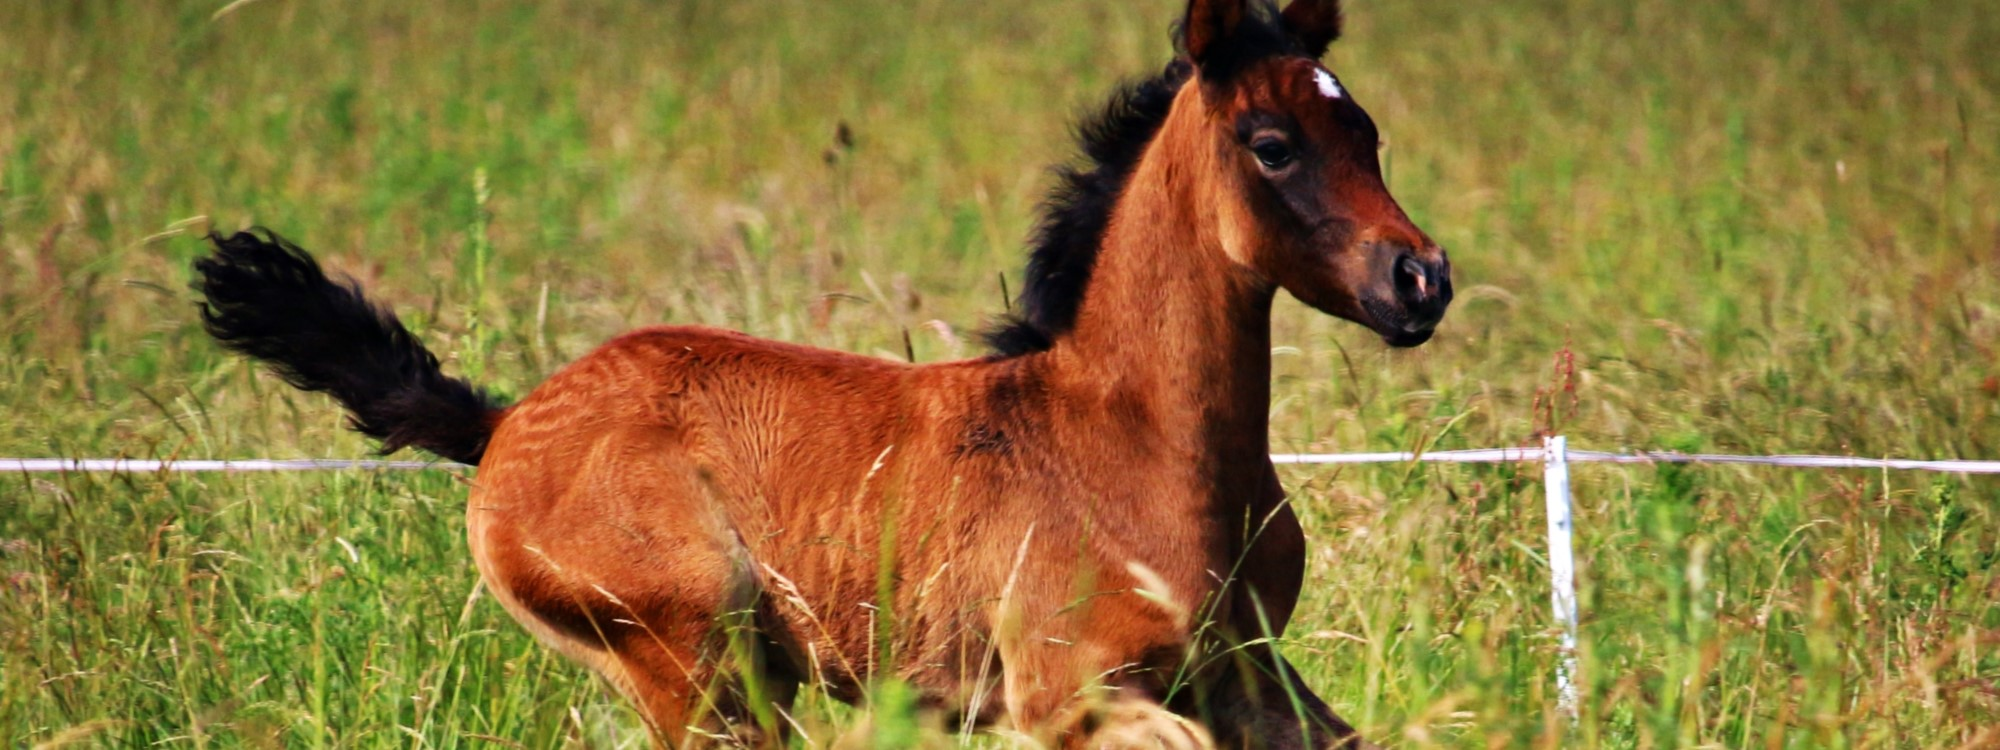 foal galloping across grass field